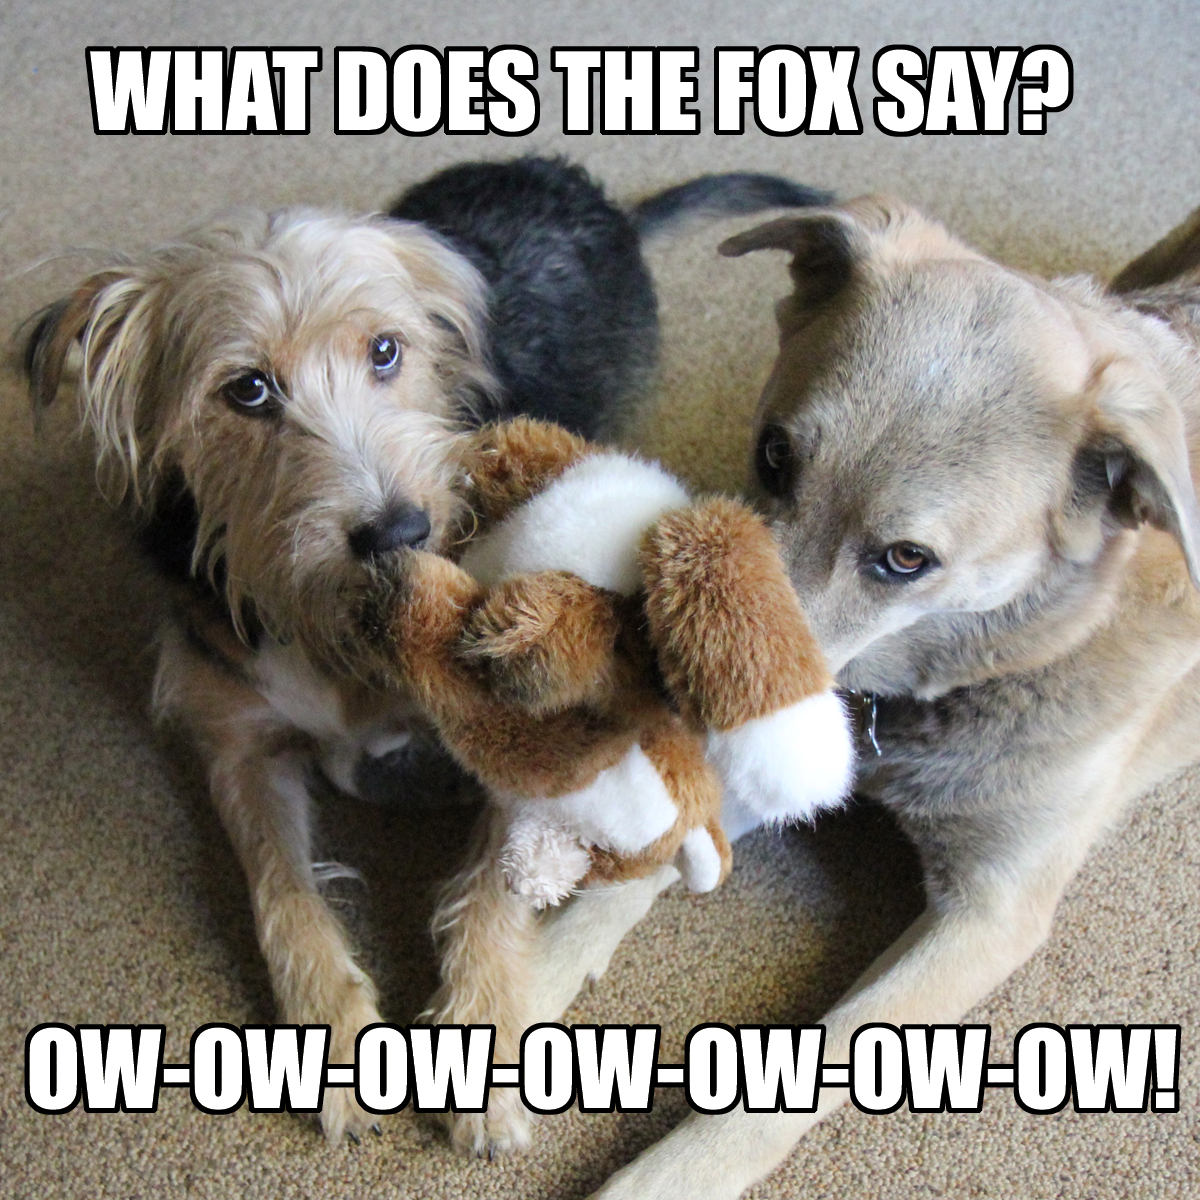 What does the fox say? Ow-ow-ow-ow-ow-ow-ow!